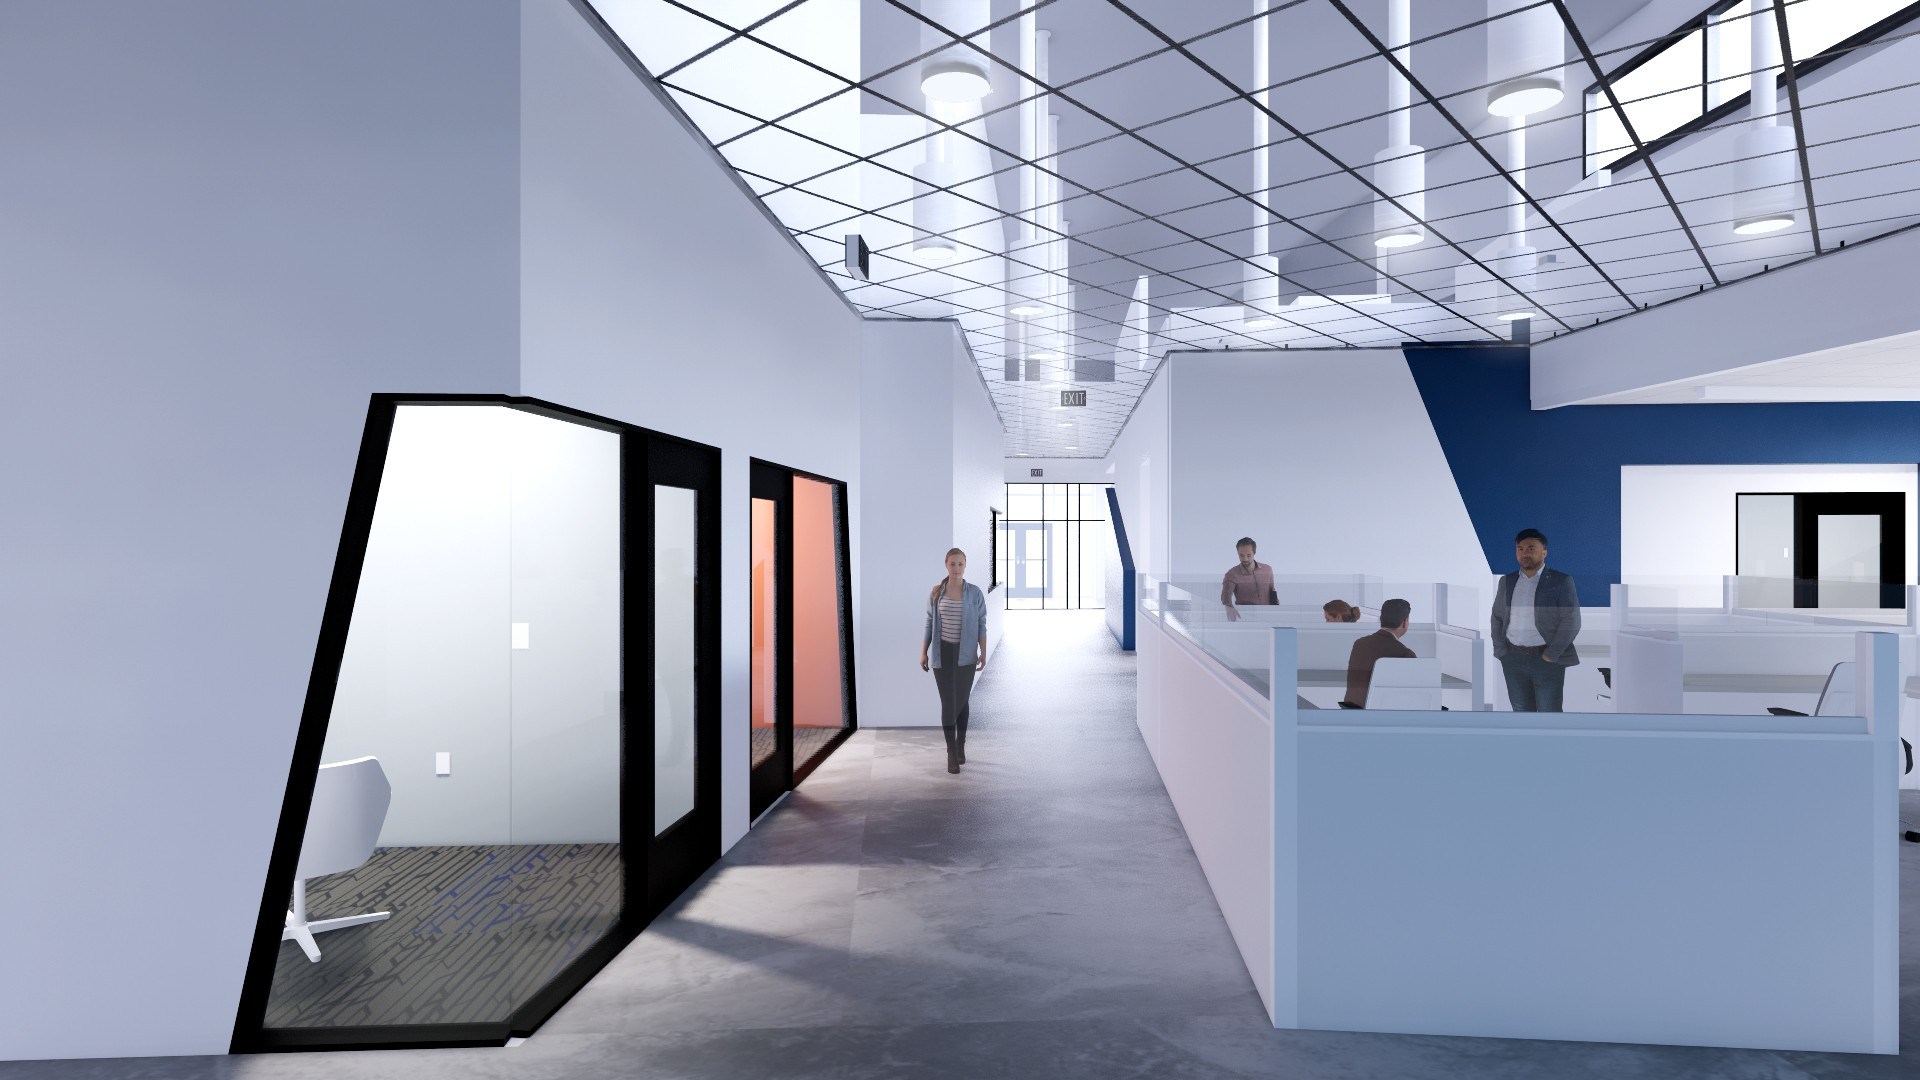 SMMA designed the Harvey Performance Facility in Gorham, ME.